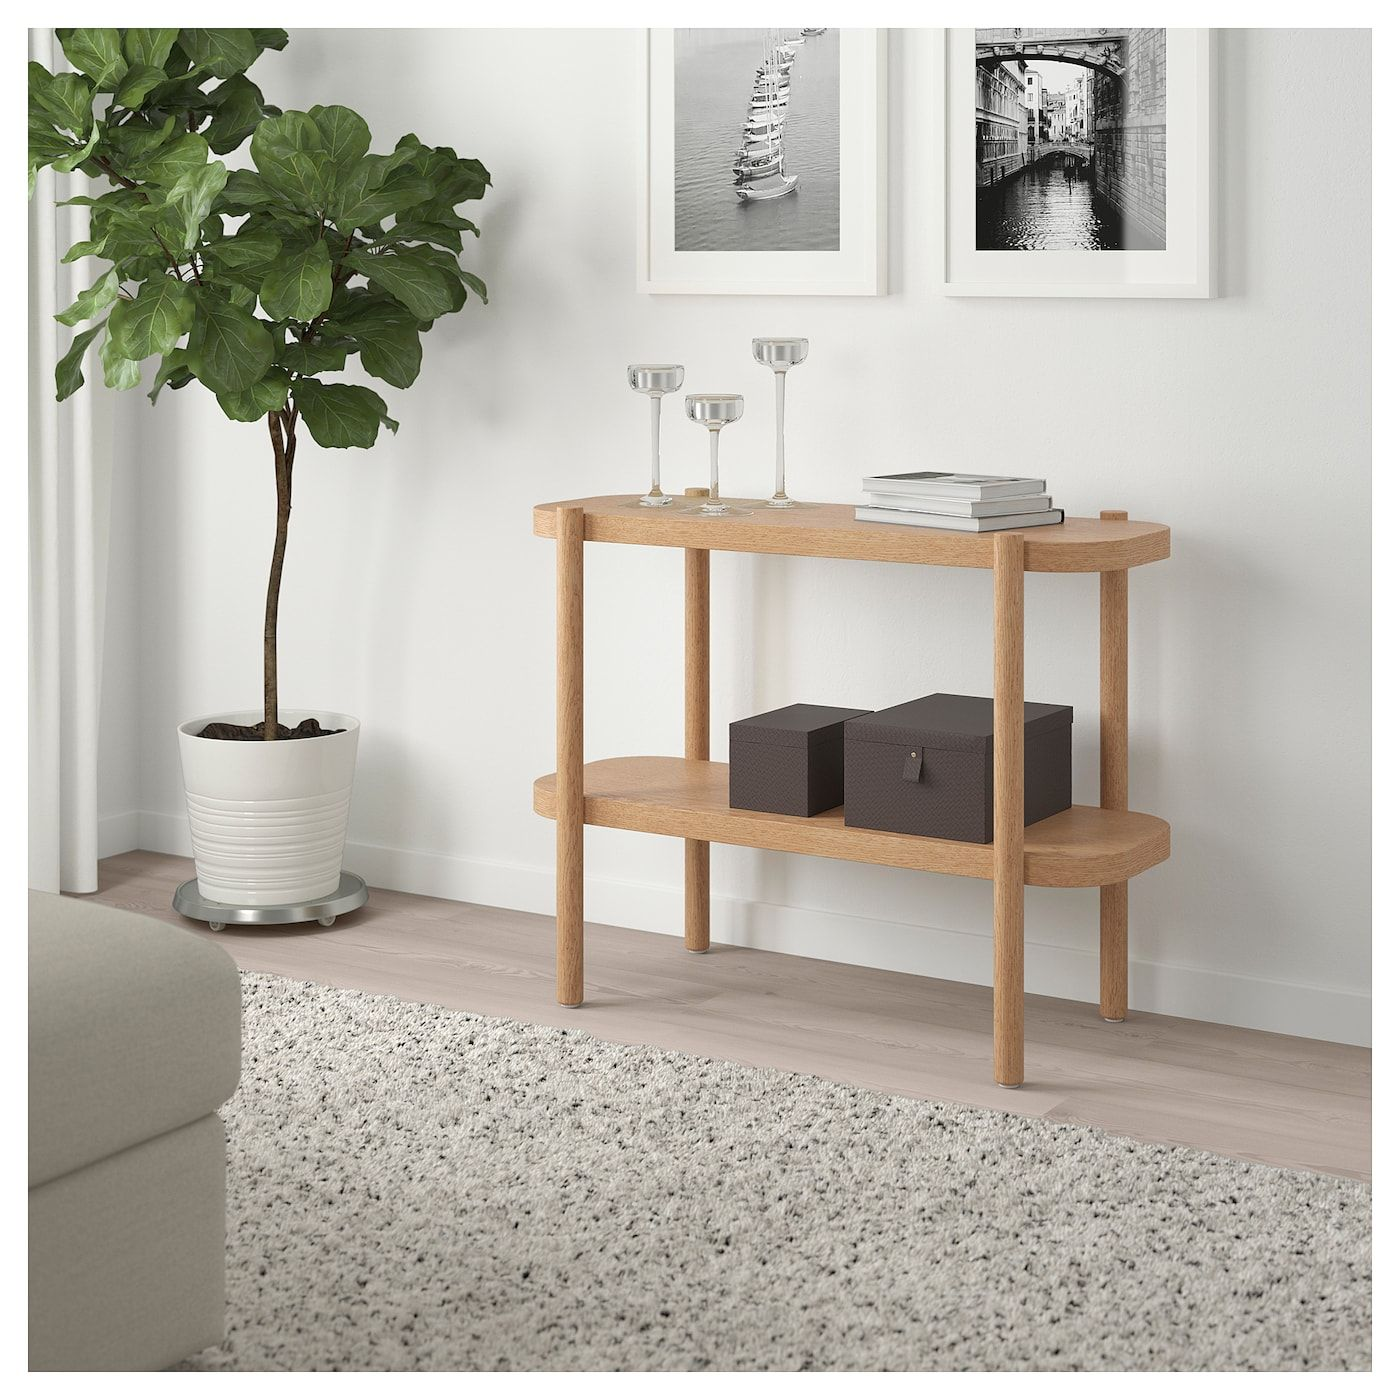 Listerby Console Table White Stained Oak 36 1 4x15x28 Ikea Wood Console Table Ikea Console Table Ikea Listerby